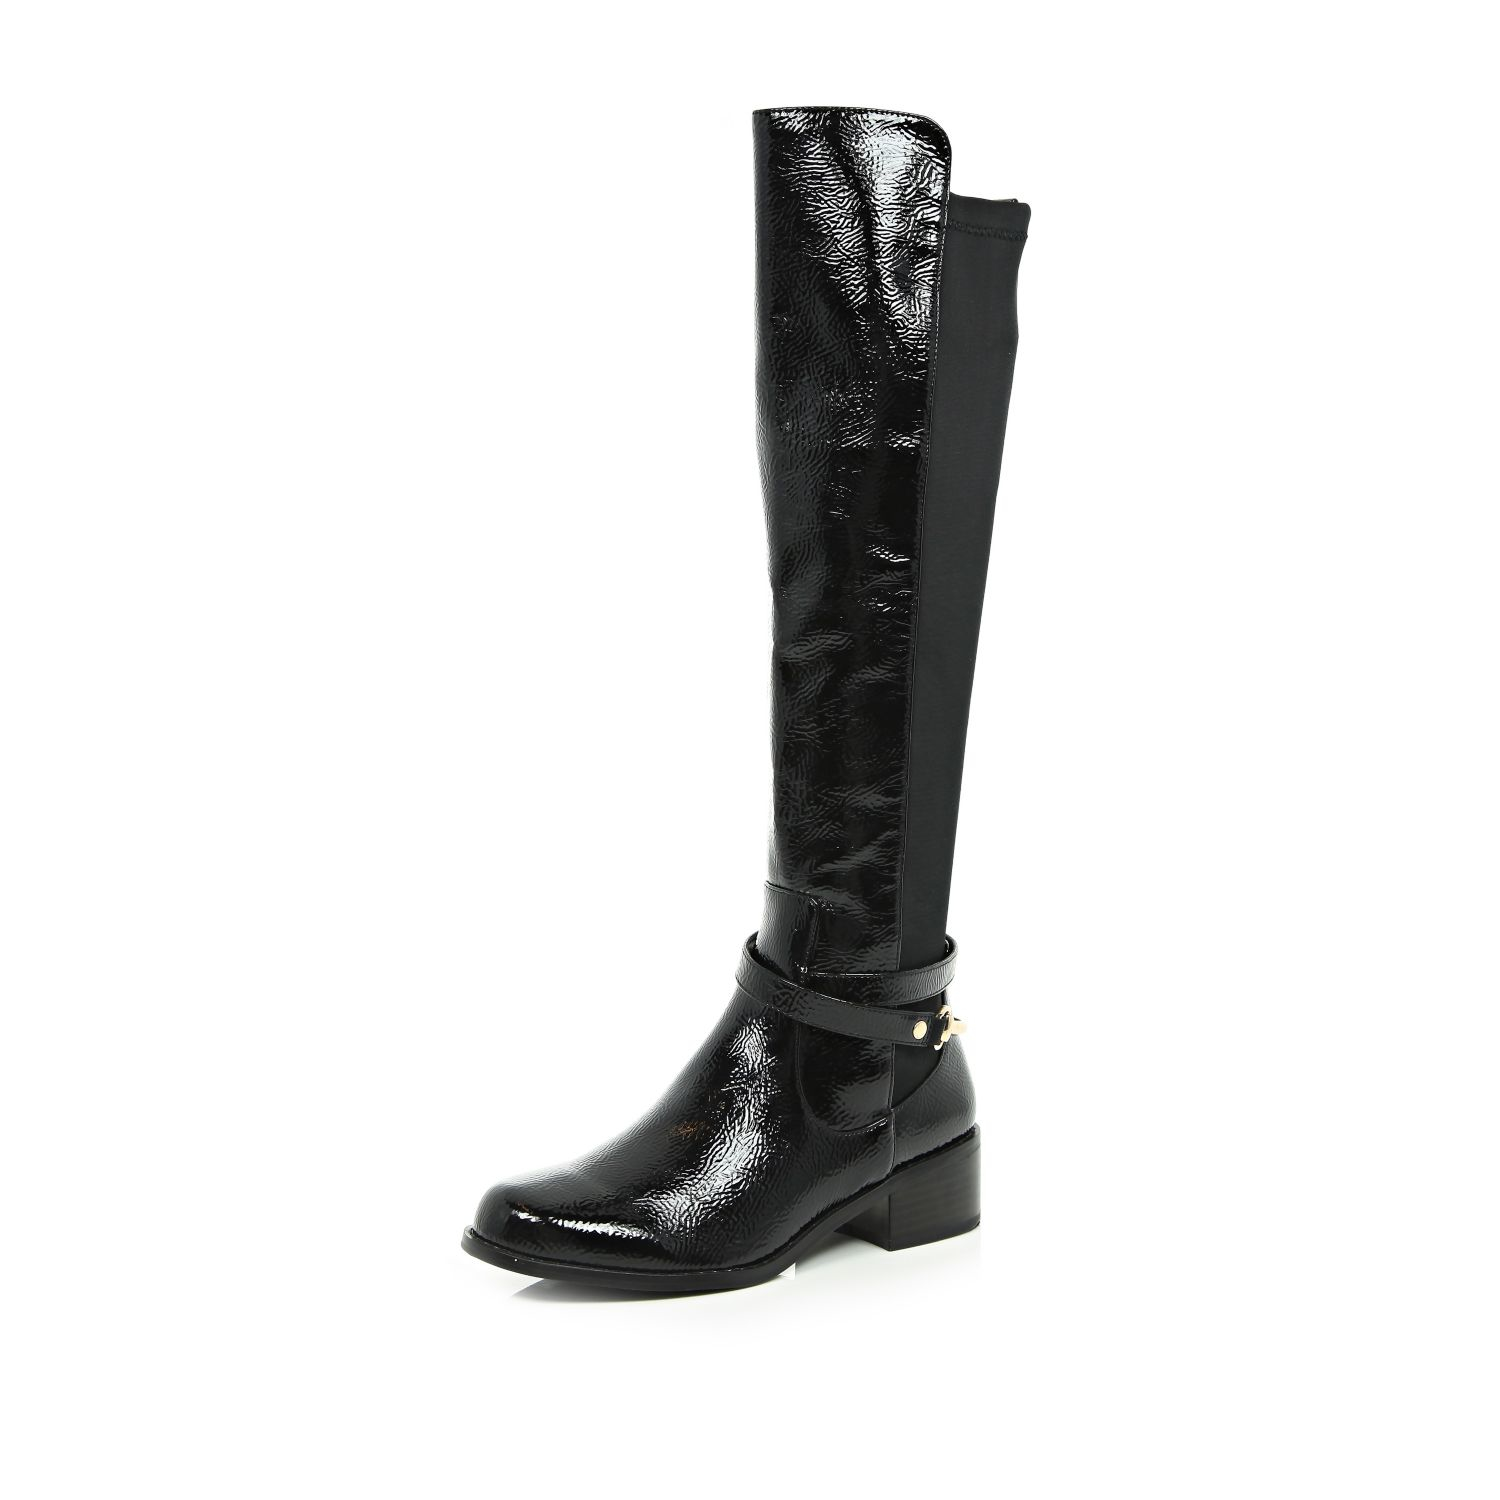 f90b909c398 River Island Black Patent Over The Knee Boots in Black - Lyst